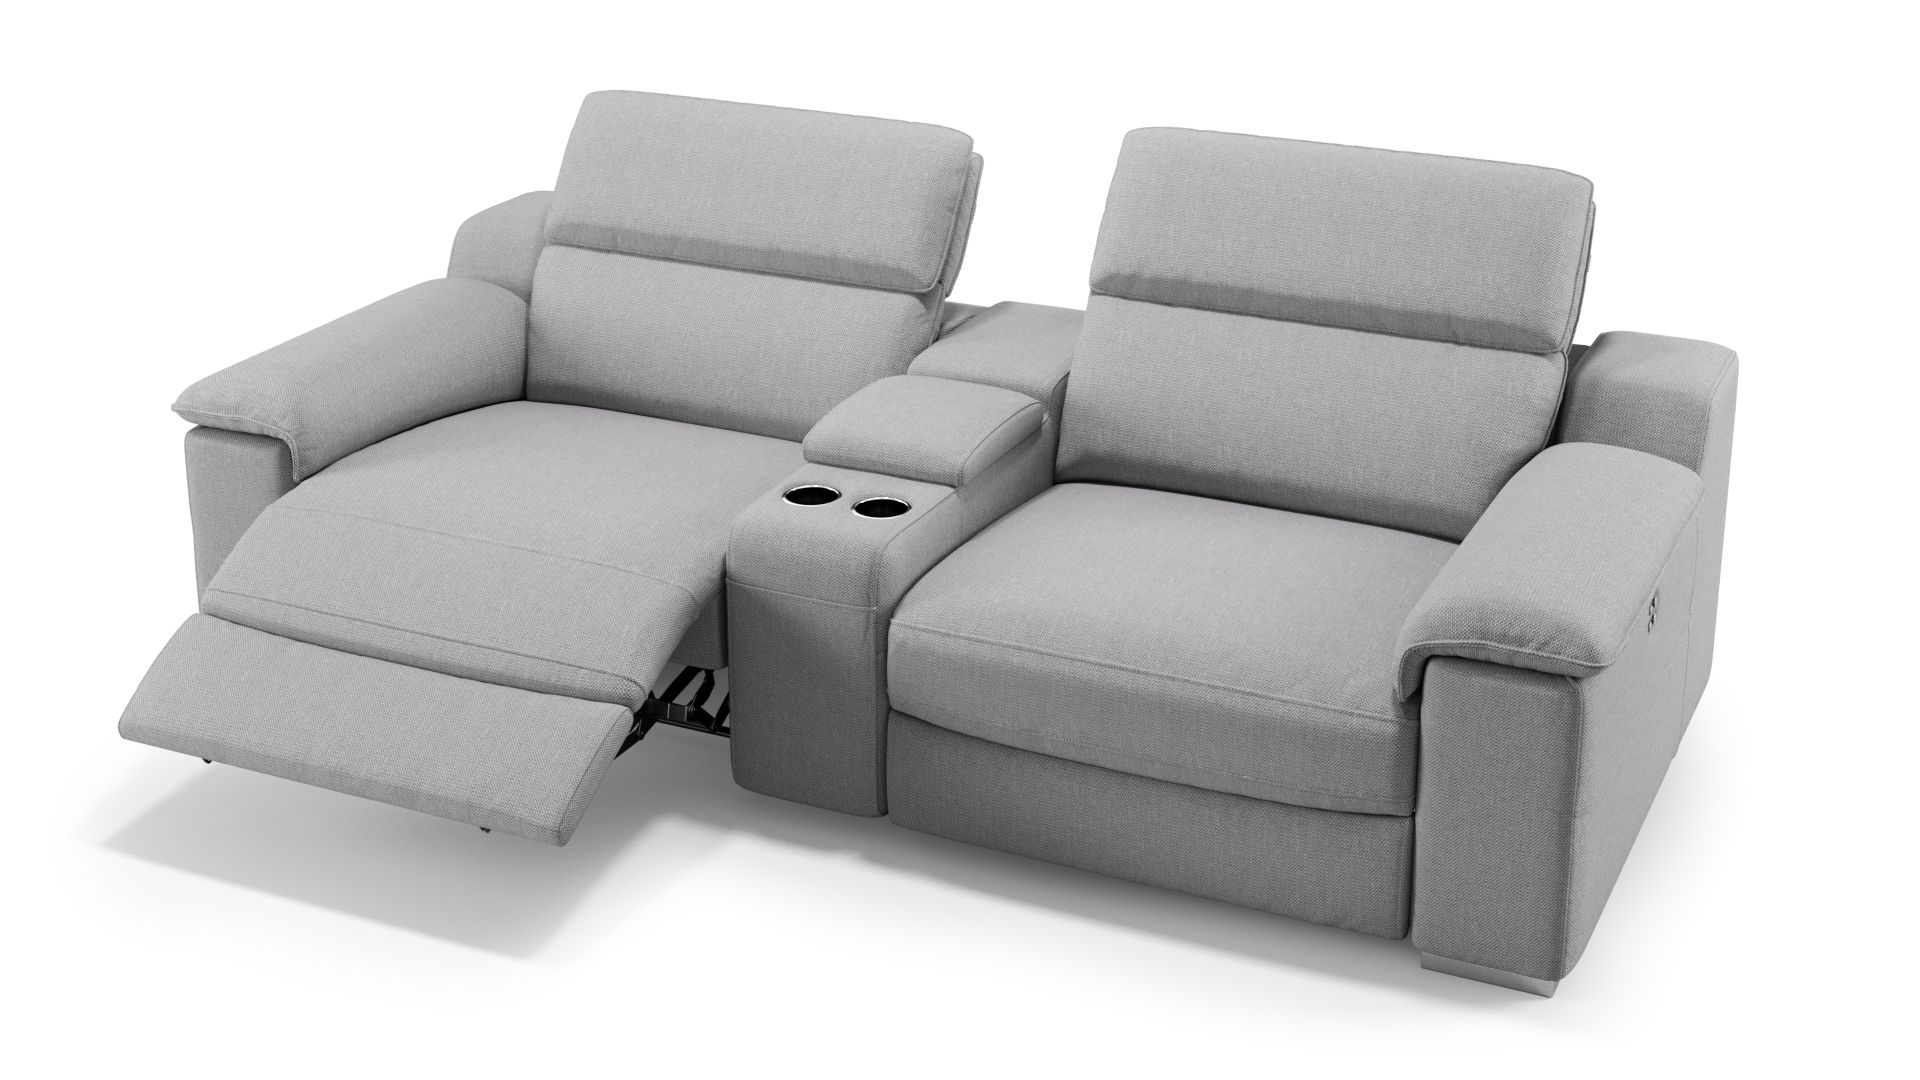 Full Size of Kinosessel 2er Microfaser Sofa Macello Mit Relaxfunktion Sofanella Grau Wohnzimmer Kinosessel 2er Microfaser